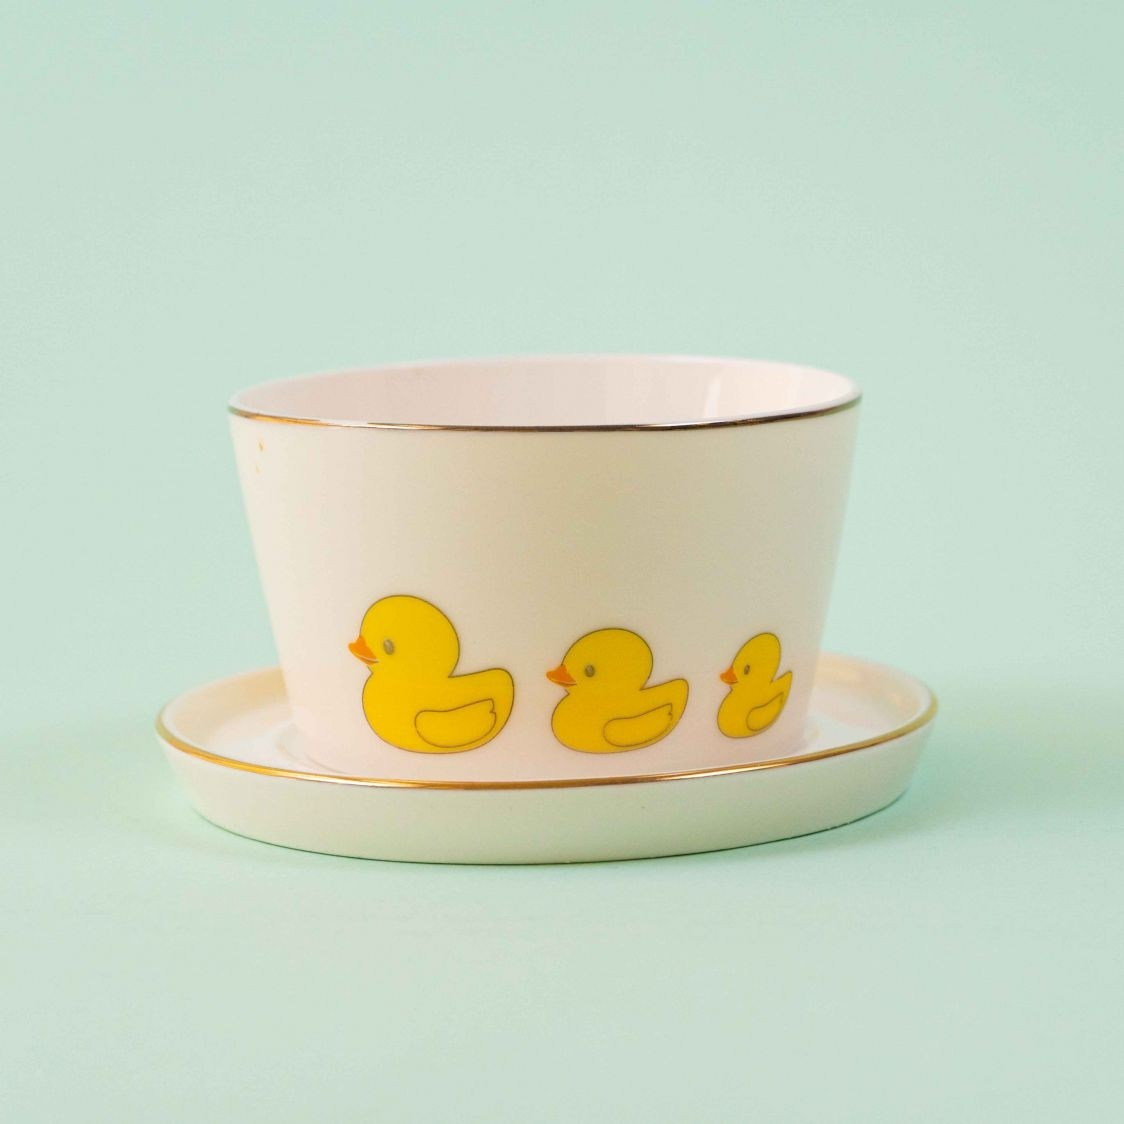 BOWL MEGHLE WITH SAUCER DUCKS - SINGLE